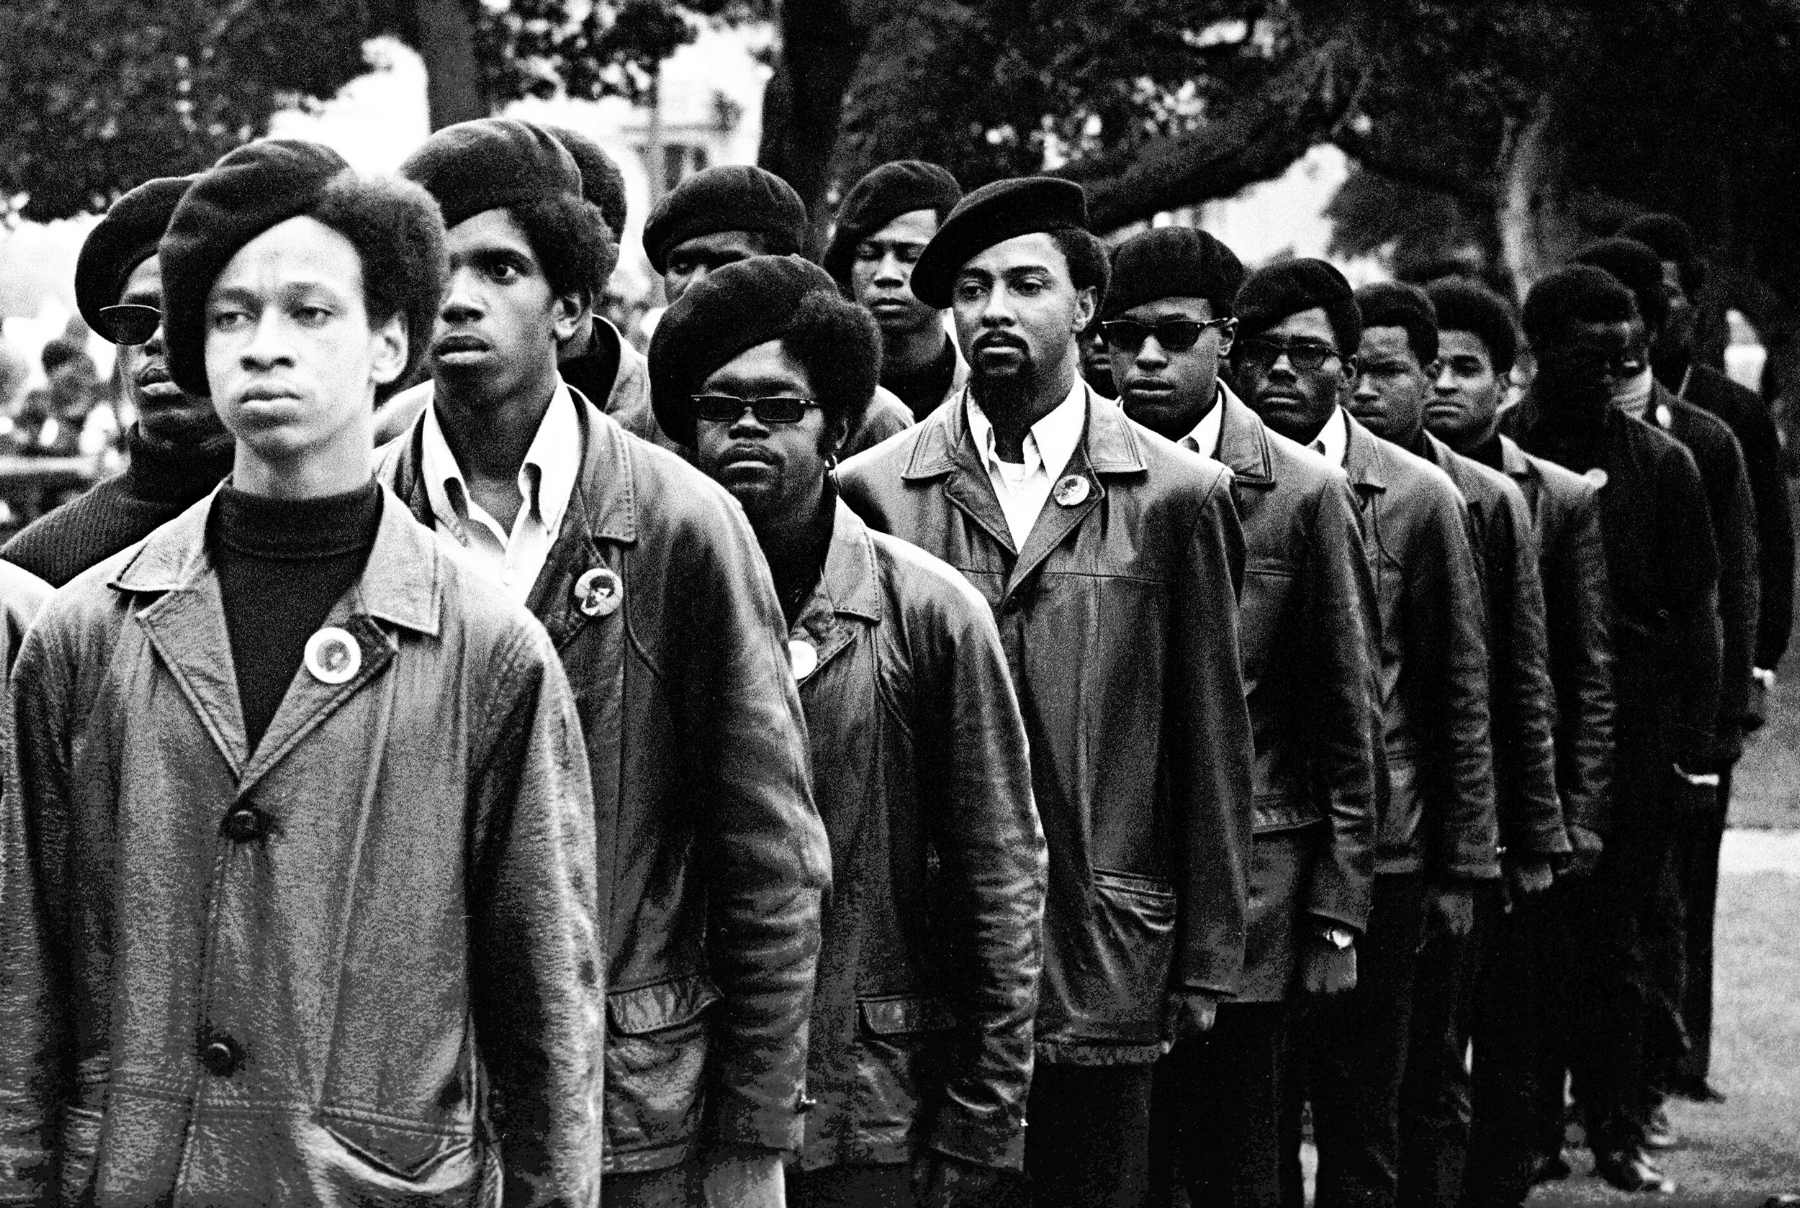 Image Above: Panthers line up at a Free Huey rally in DeFremery Park, Oakland, July 28, 1968. The light-skinned man is Gregory Harrison. His brother, Oleander, was in the group that went to Sacramento.All images: Stephen Shames, Courtesy of Steven Kasher Gallery